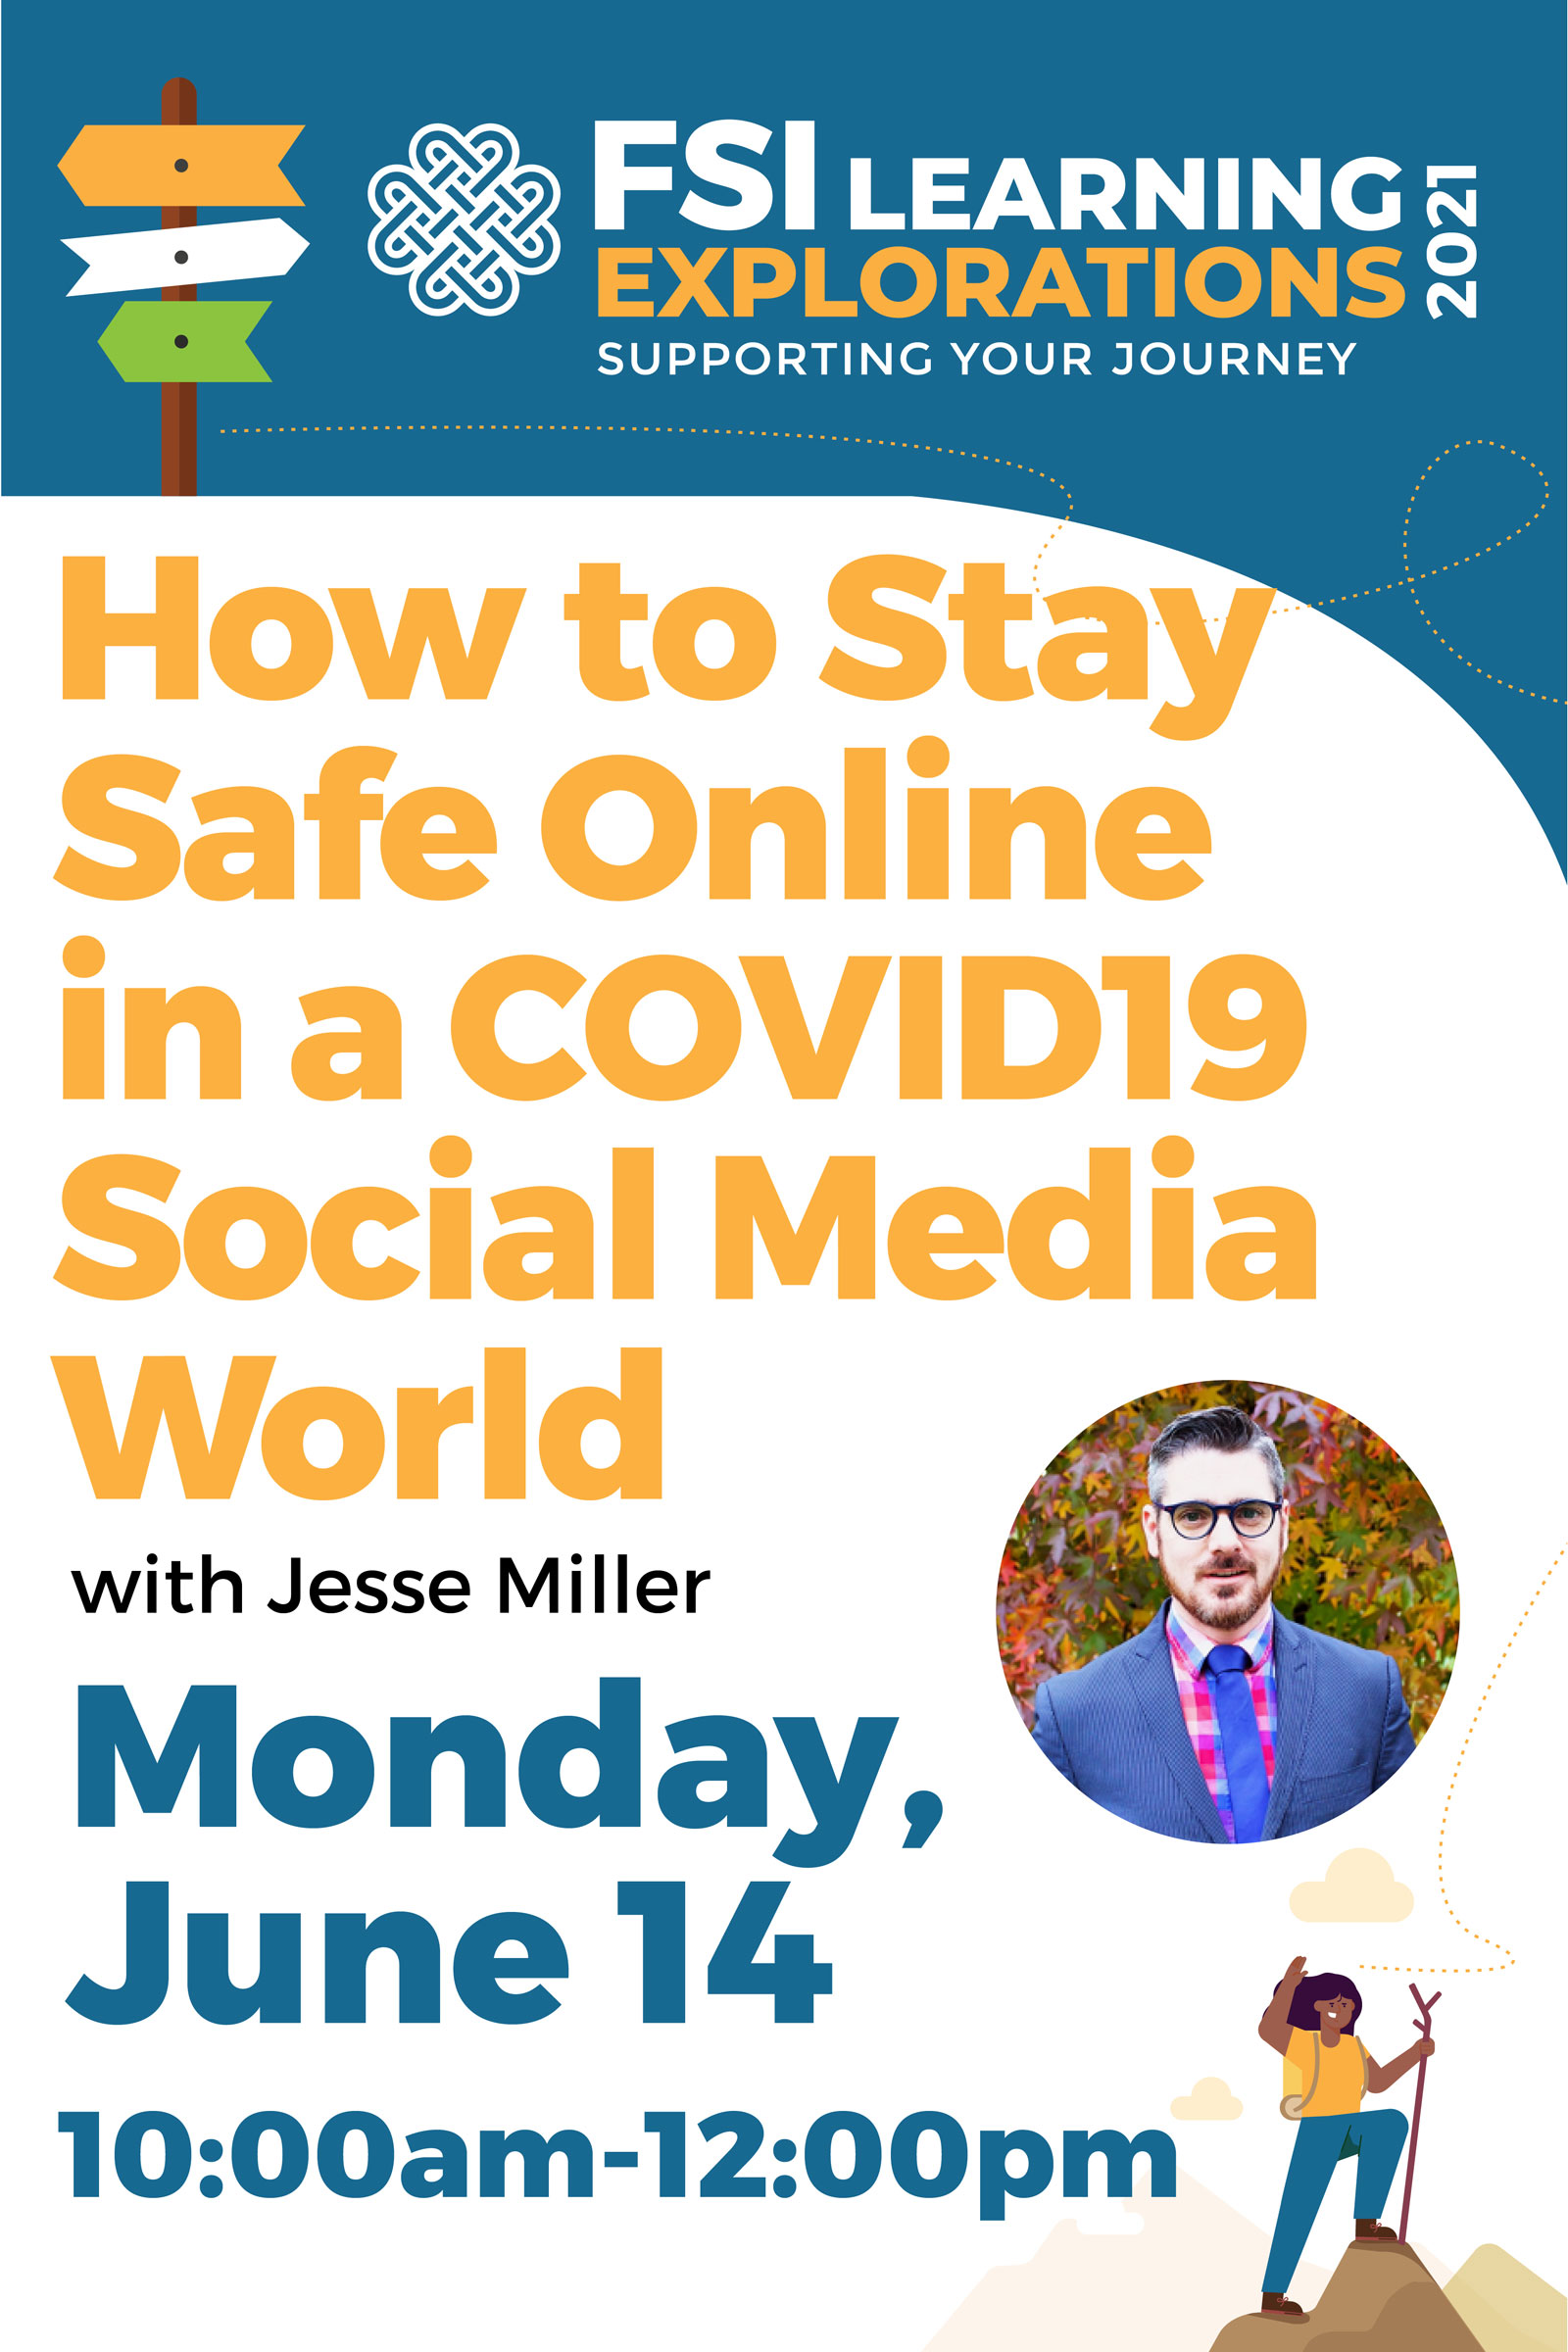 FSI Learning Explorations - How to Stay Safe Online in a COVID – 19 Social Media World.